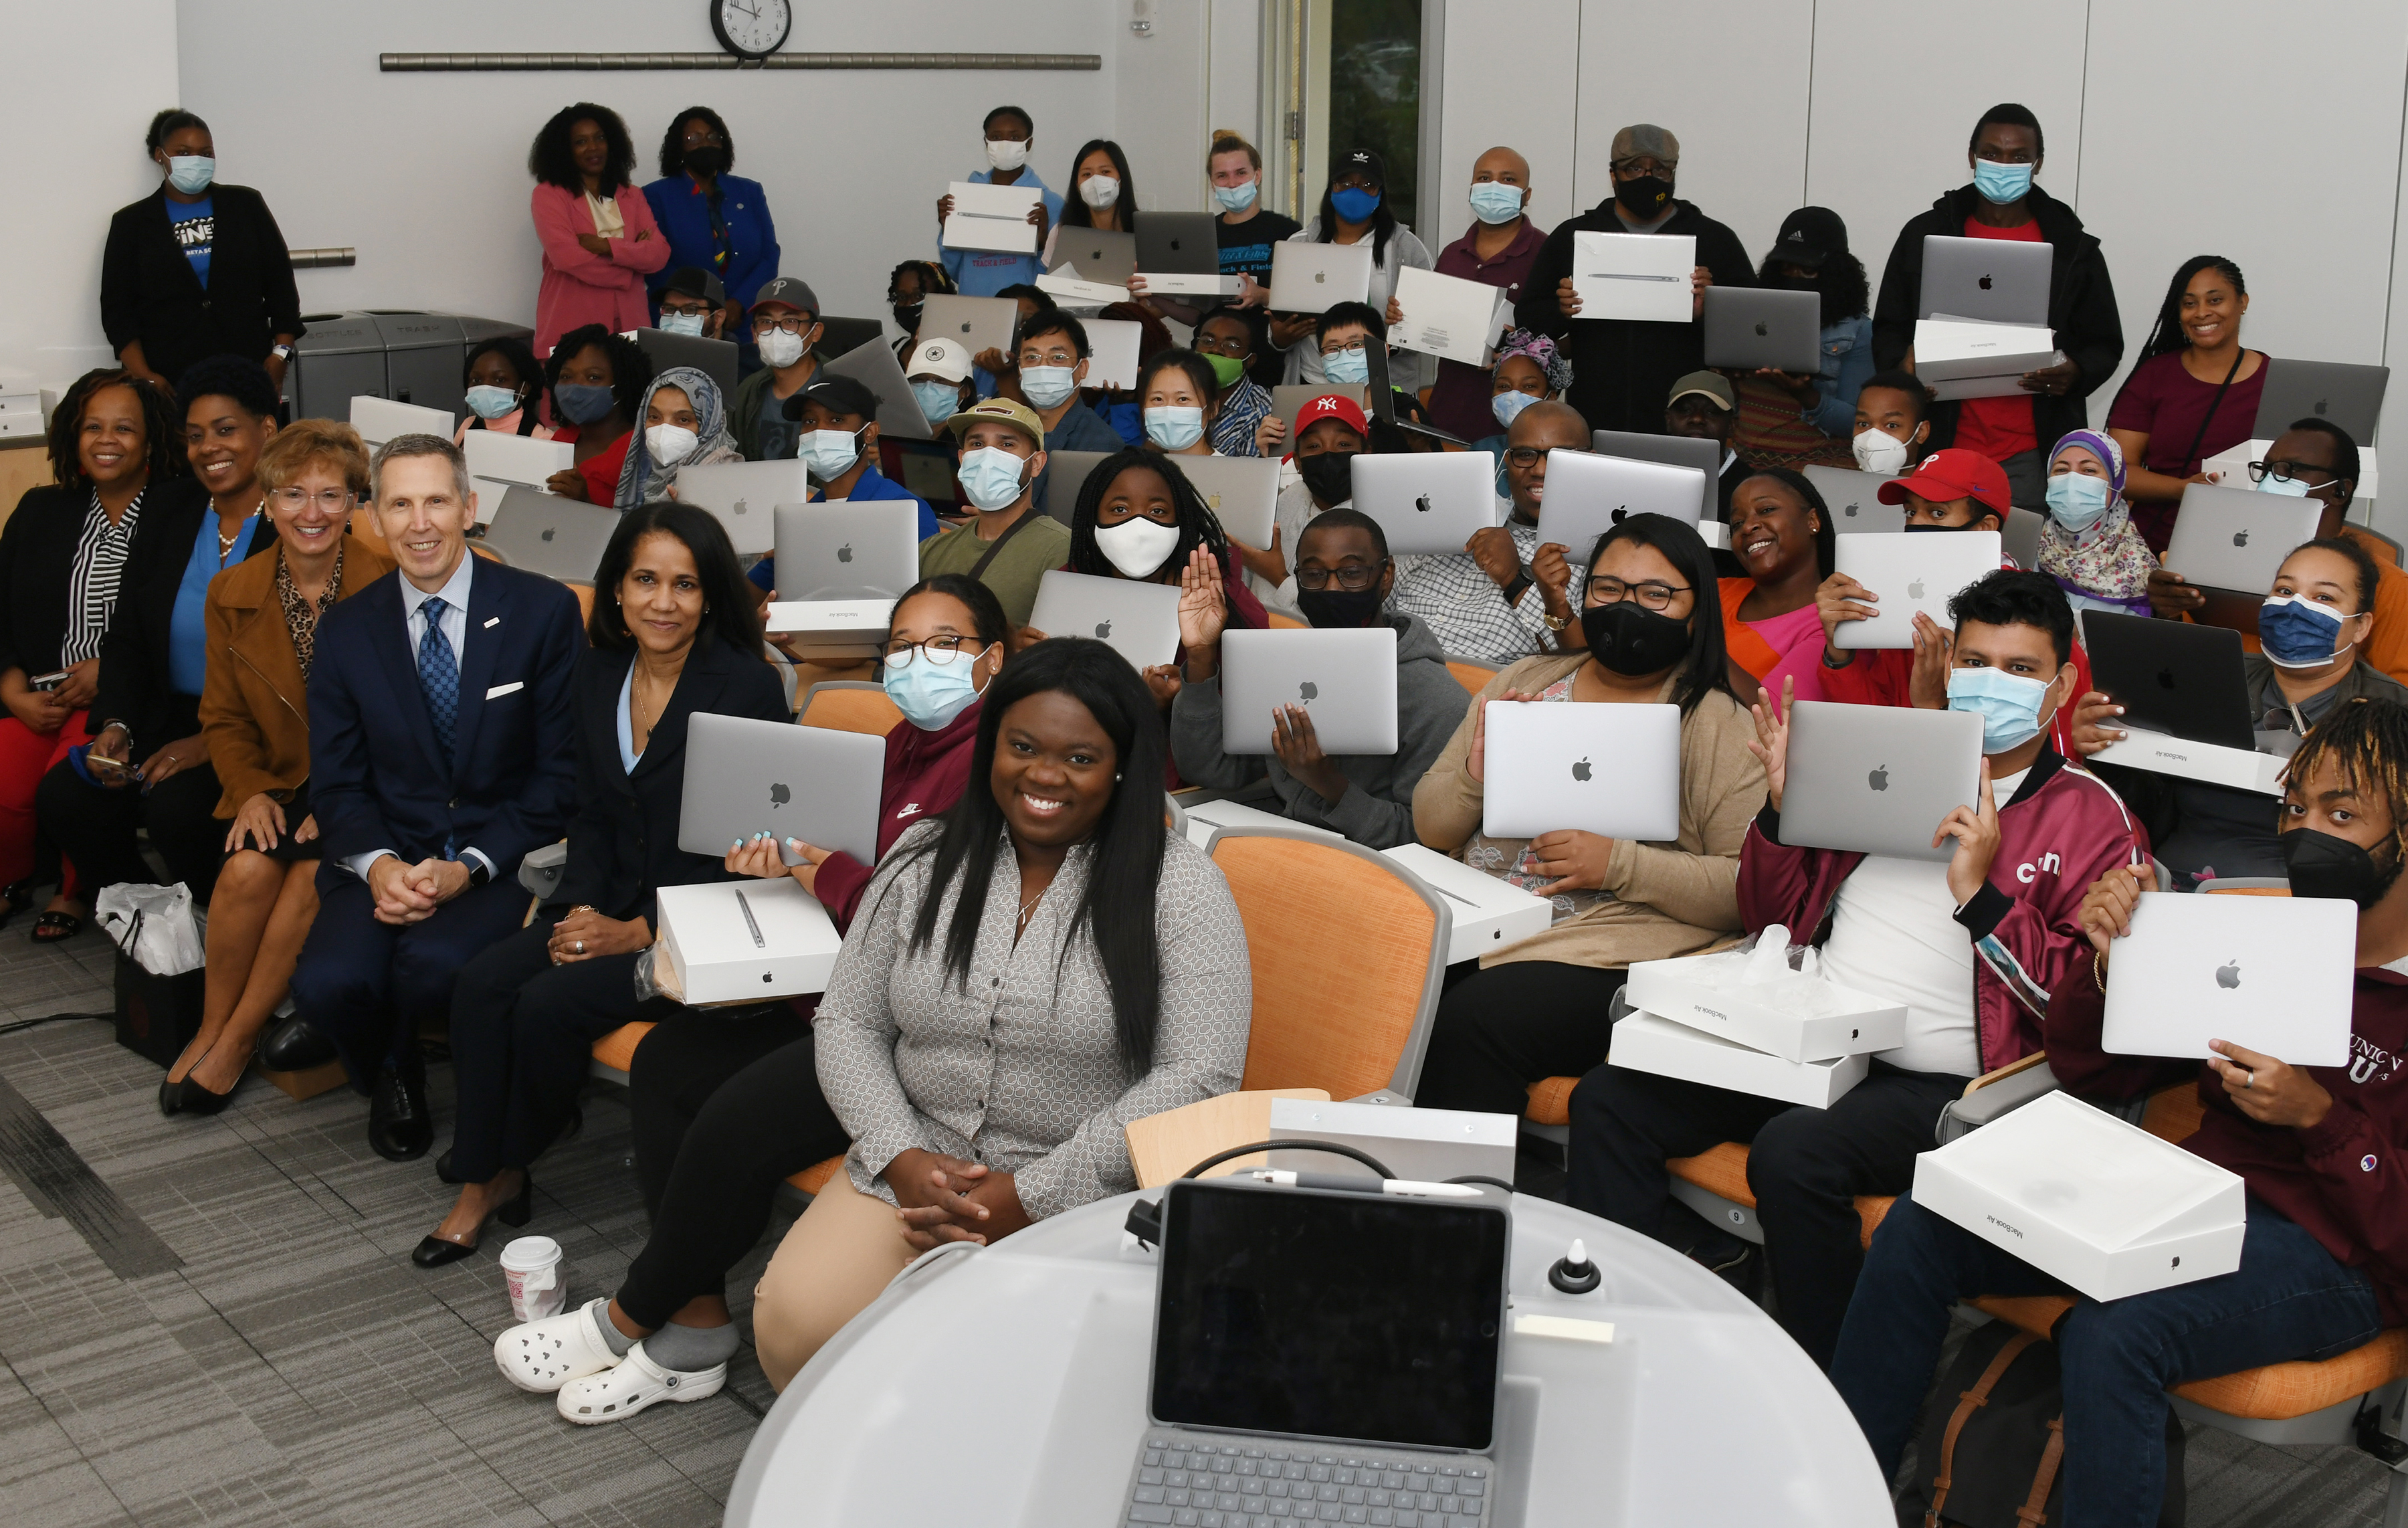 Pictured are some of the STEM graduate students who each received a MacBook from DuPont, which donated 50 of the high-end Apple laptop computers to Delaware State University. Seated in the front row are the DuPont officials that made the donation happen.